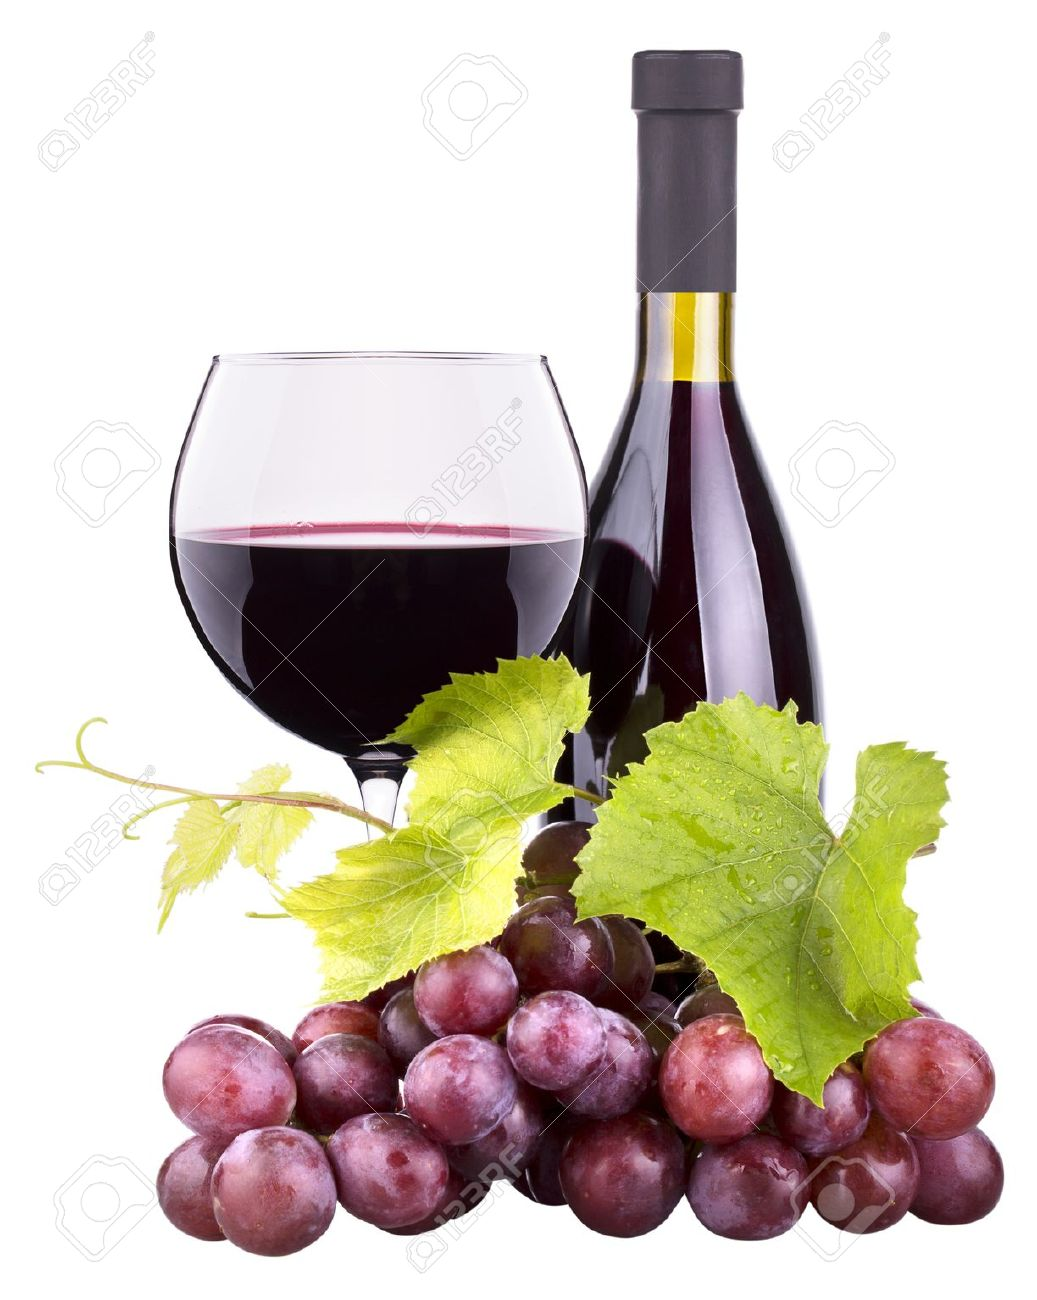 Ripe Grapes Wine Glass And Bottle Of Wine Isolated On White Stock